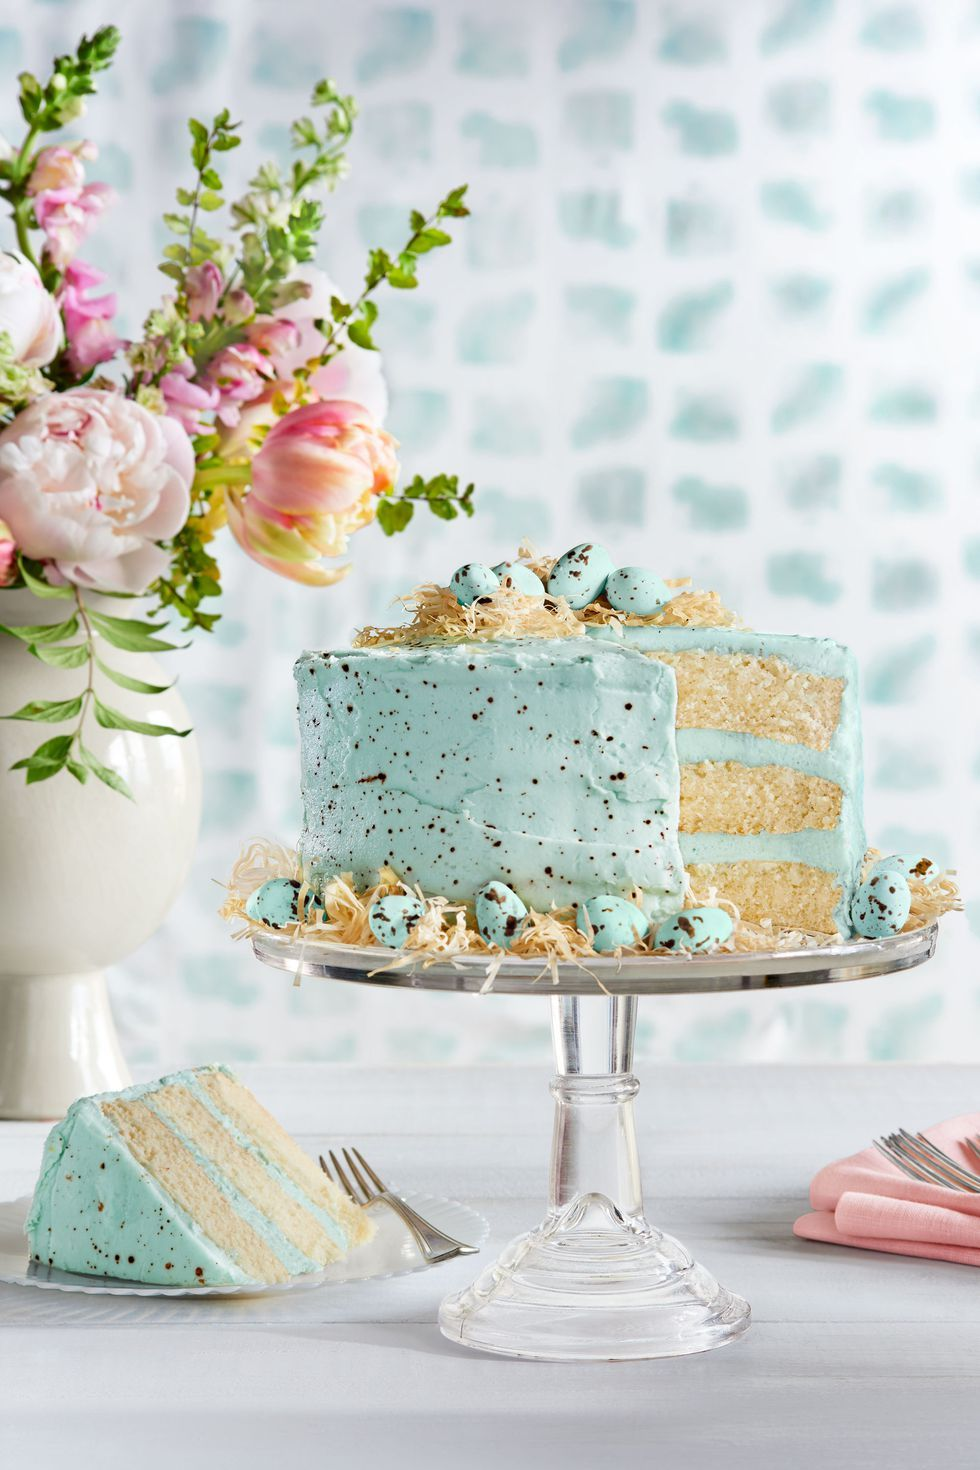 50+ Easy Easter Desserts That Celebrate Spring In a Big Way